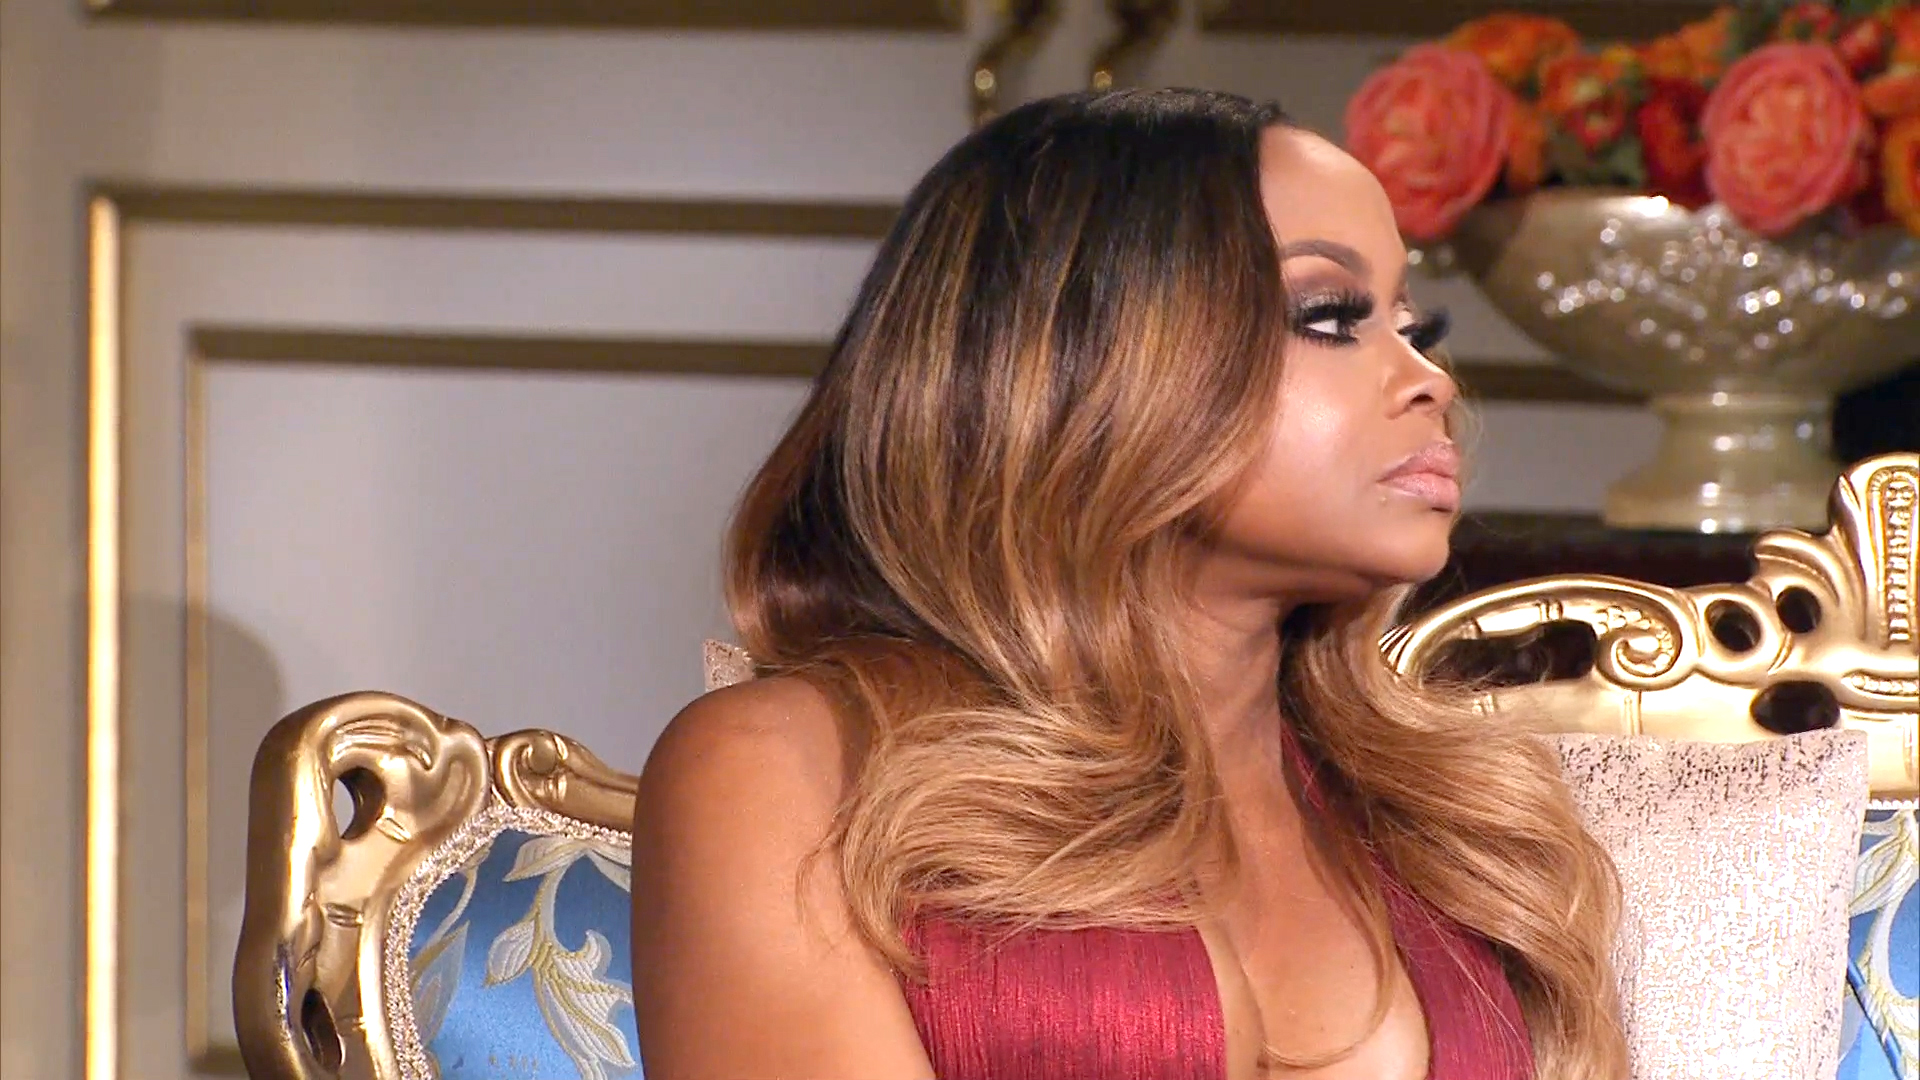 Phaedra Parks Started the Drugging Rumors About Kandi Burruss?!